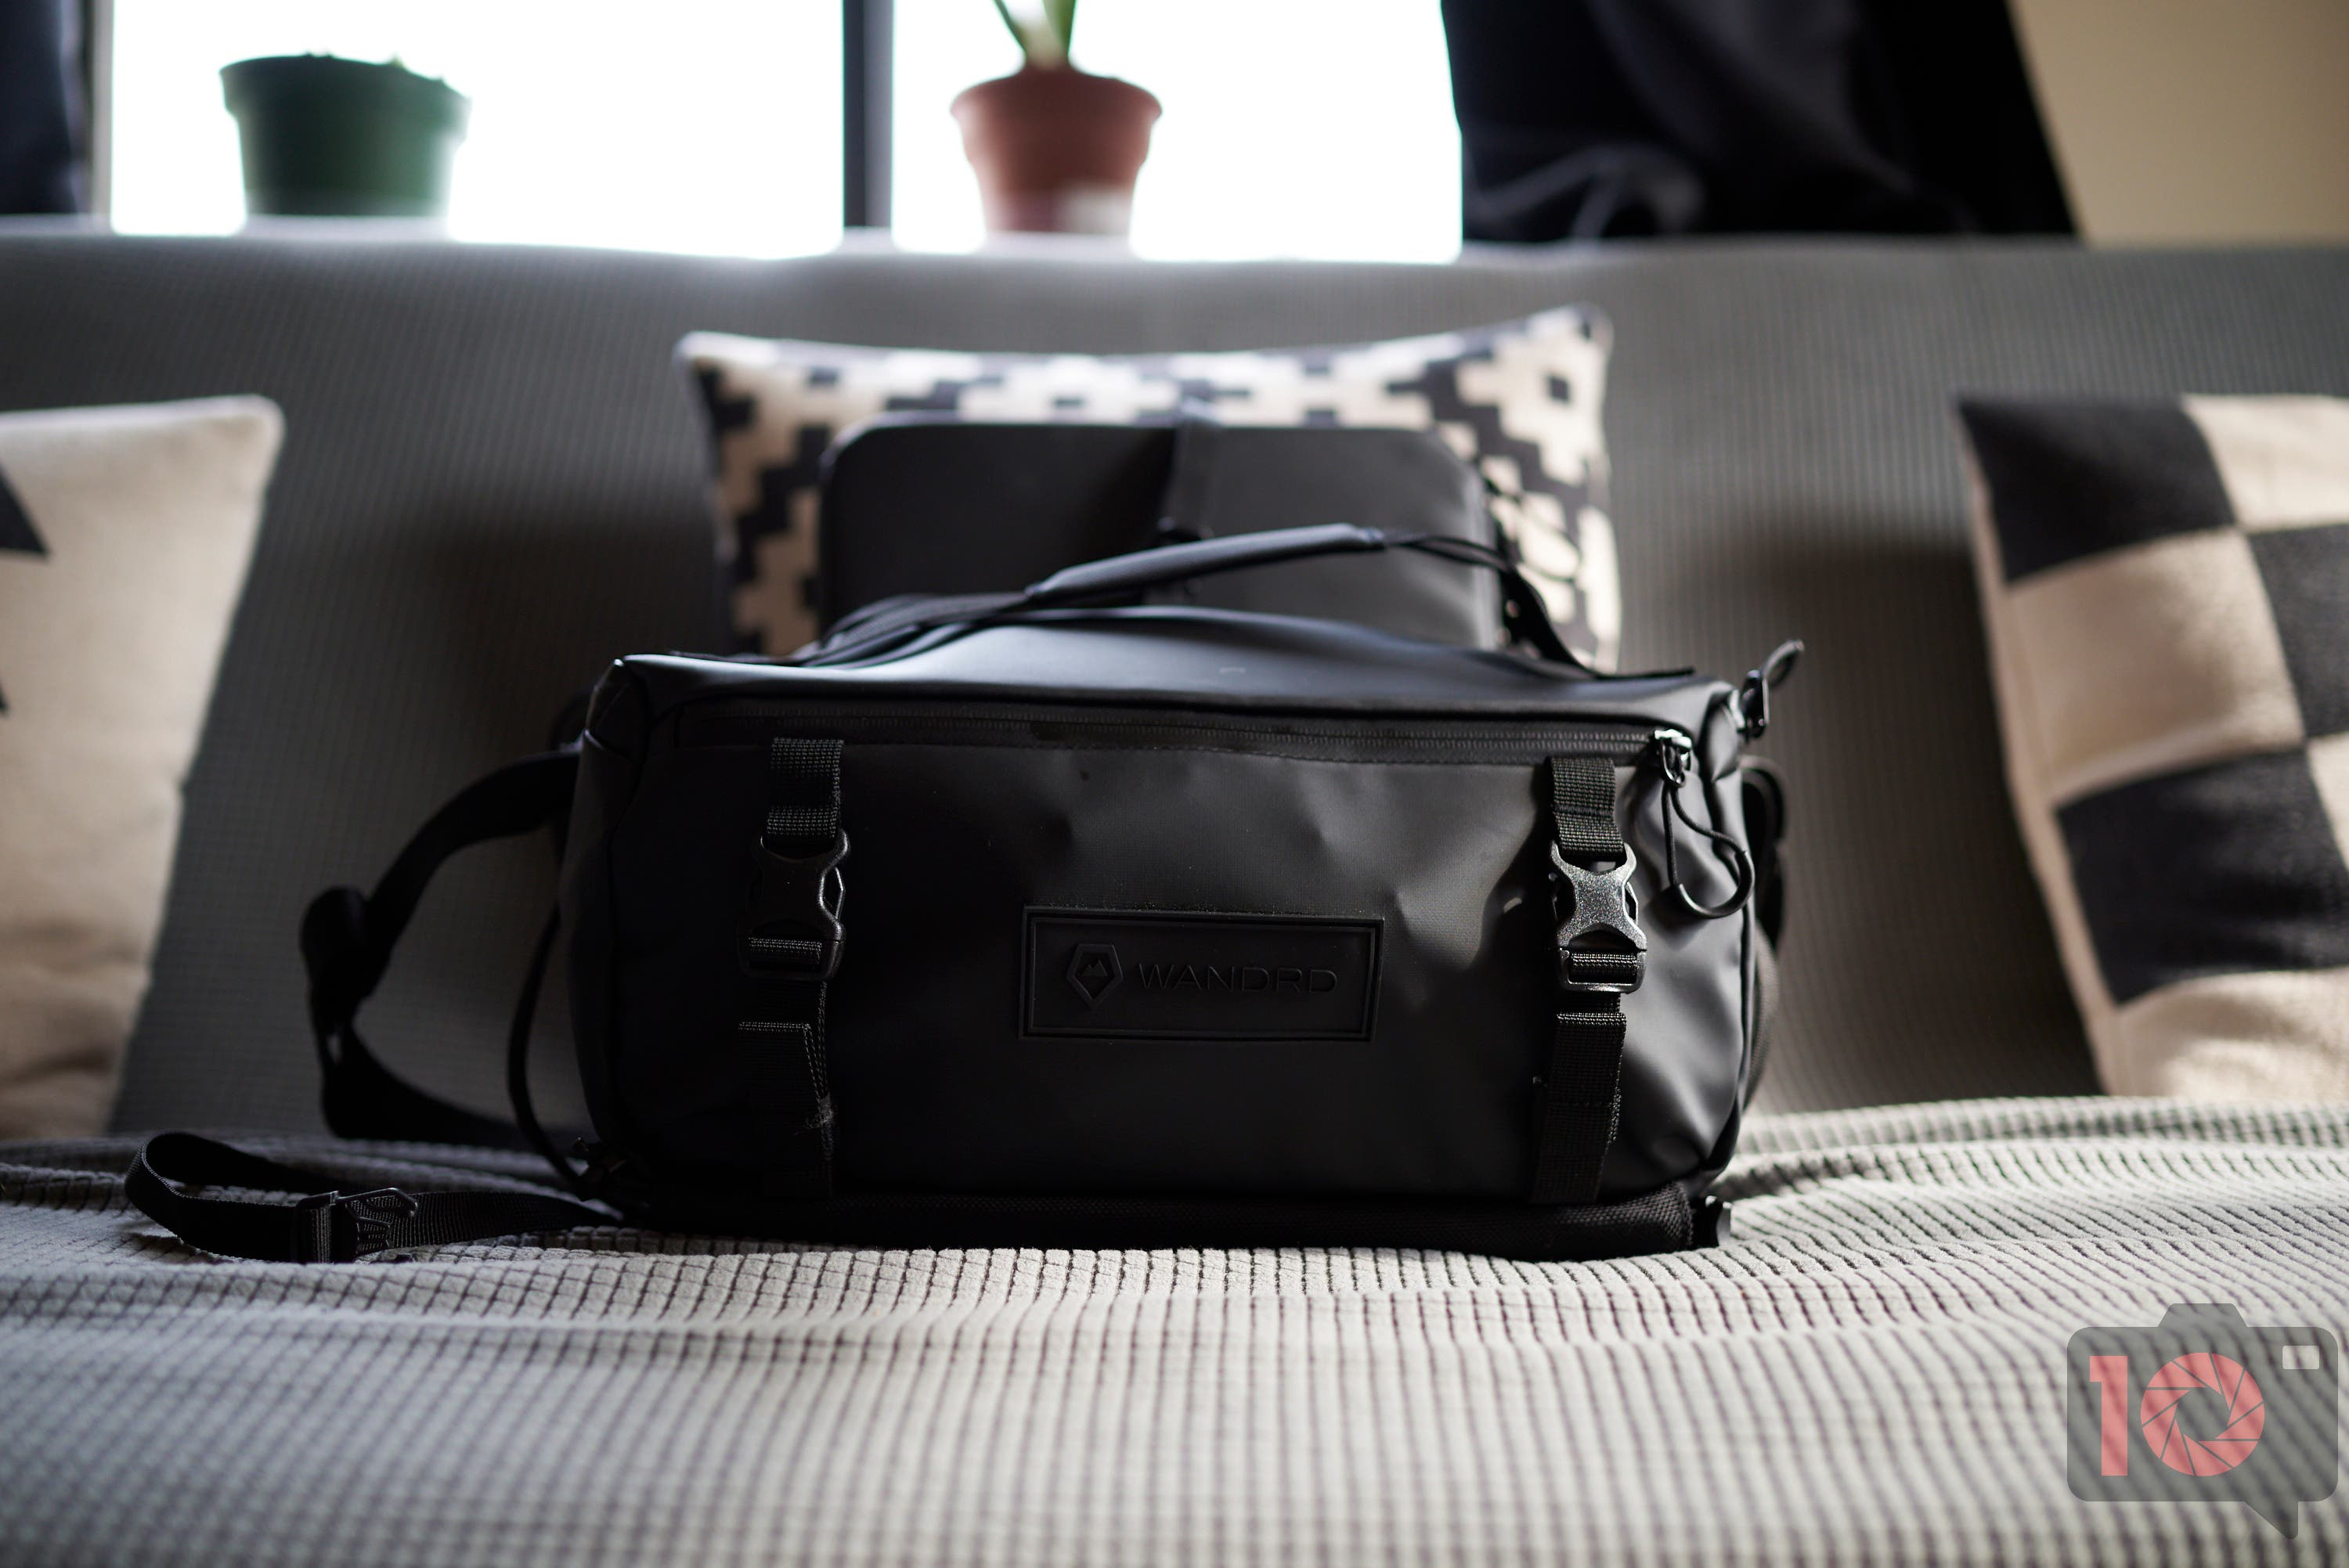 Is the WANDRD ROAM 9L Camera Bag Really That Great?